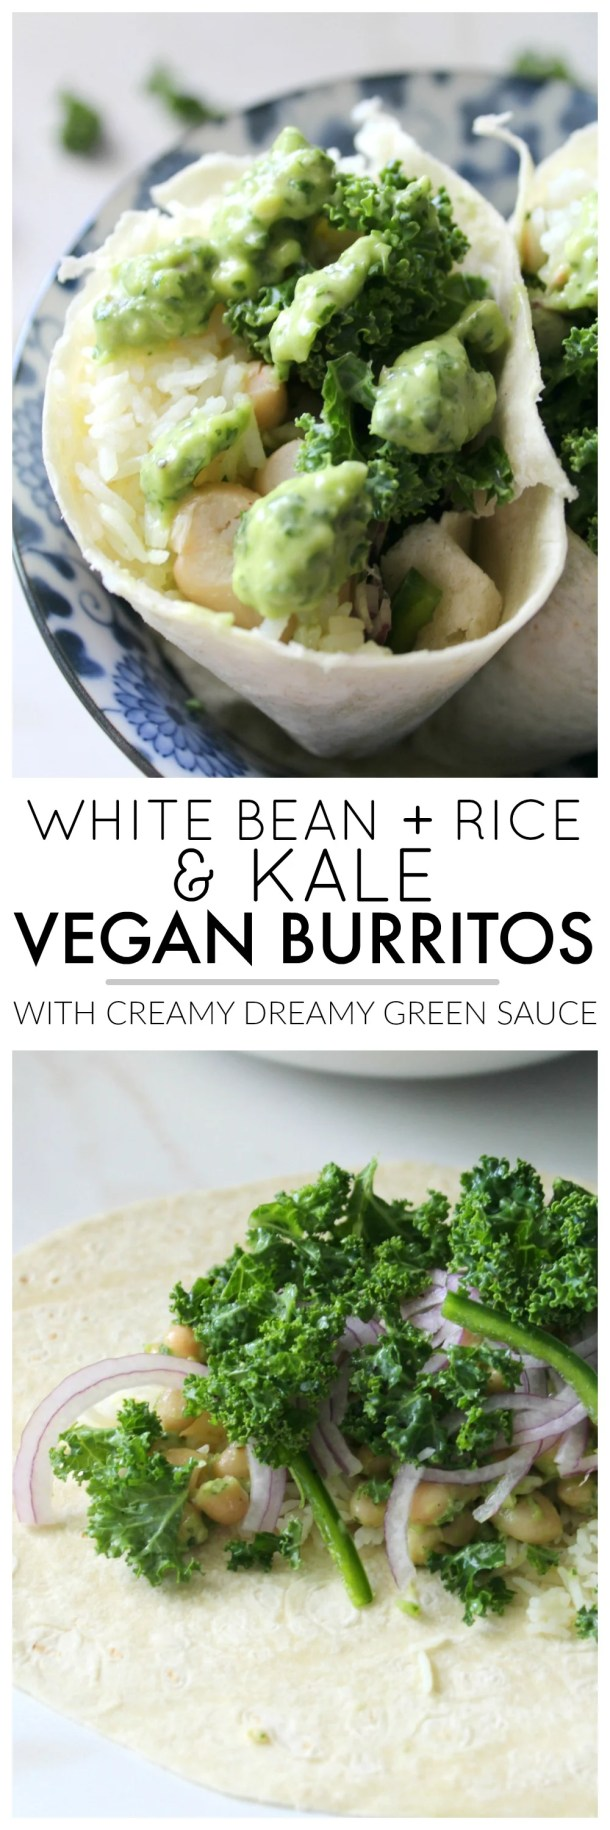 These White Bean, Rice & Kale Vegan Burritos are the perfect meal on the go. Packed full of marinated kale, hot white rice and beans mixed with Creamy Dreamy Green Sauce. Both healthy and delicious   ThisSavoryVegan.com #thissavoryvegan #veganburrito #vegan